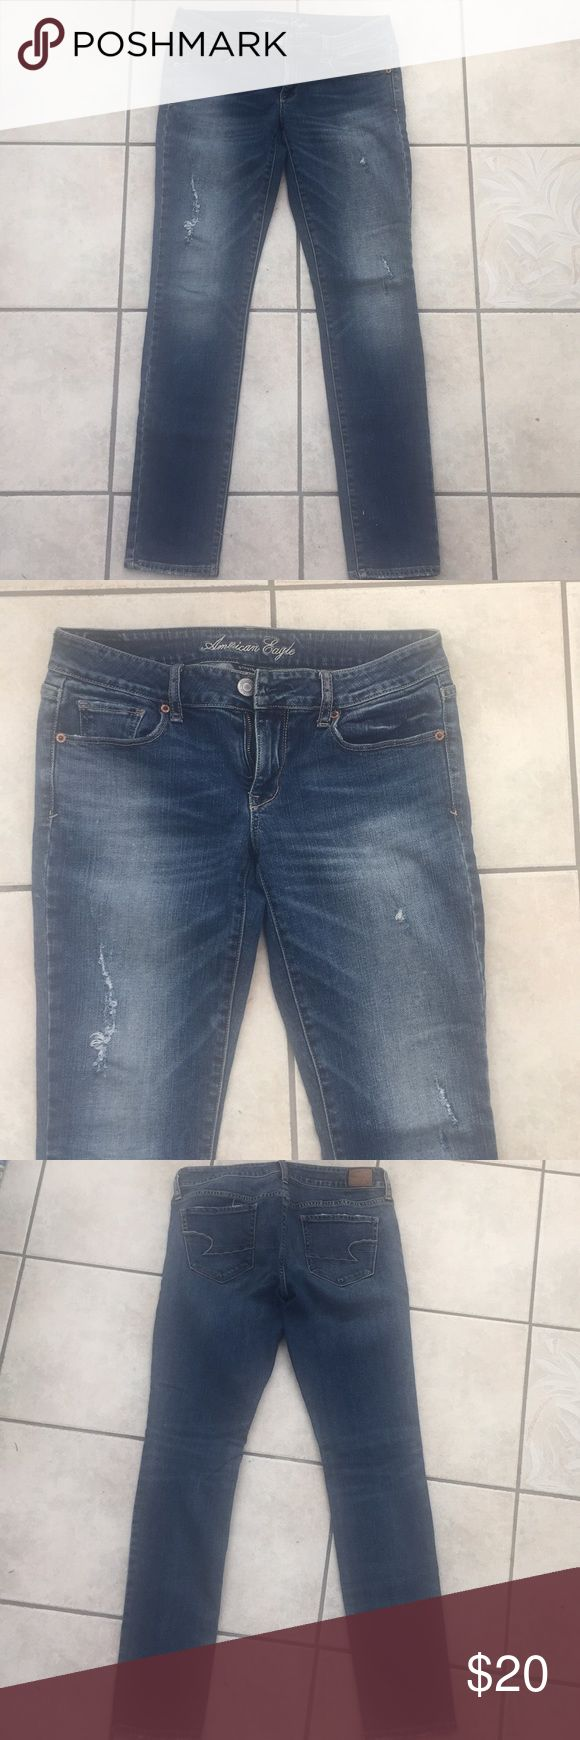 American eagle distressed skinny jeans Size 6 medium wash skinny jeans. These feel more like a relaxed fit skinny, like a boyfriend fit. Would look really cute with a rolled cuff and some tennis shoes. American Eagle Outfitters Jeans Skinny